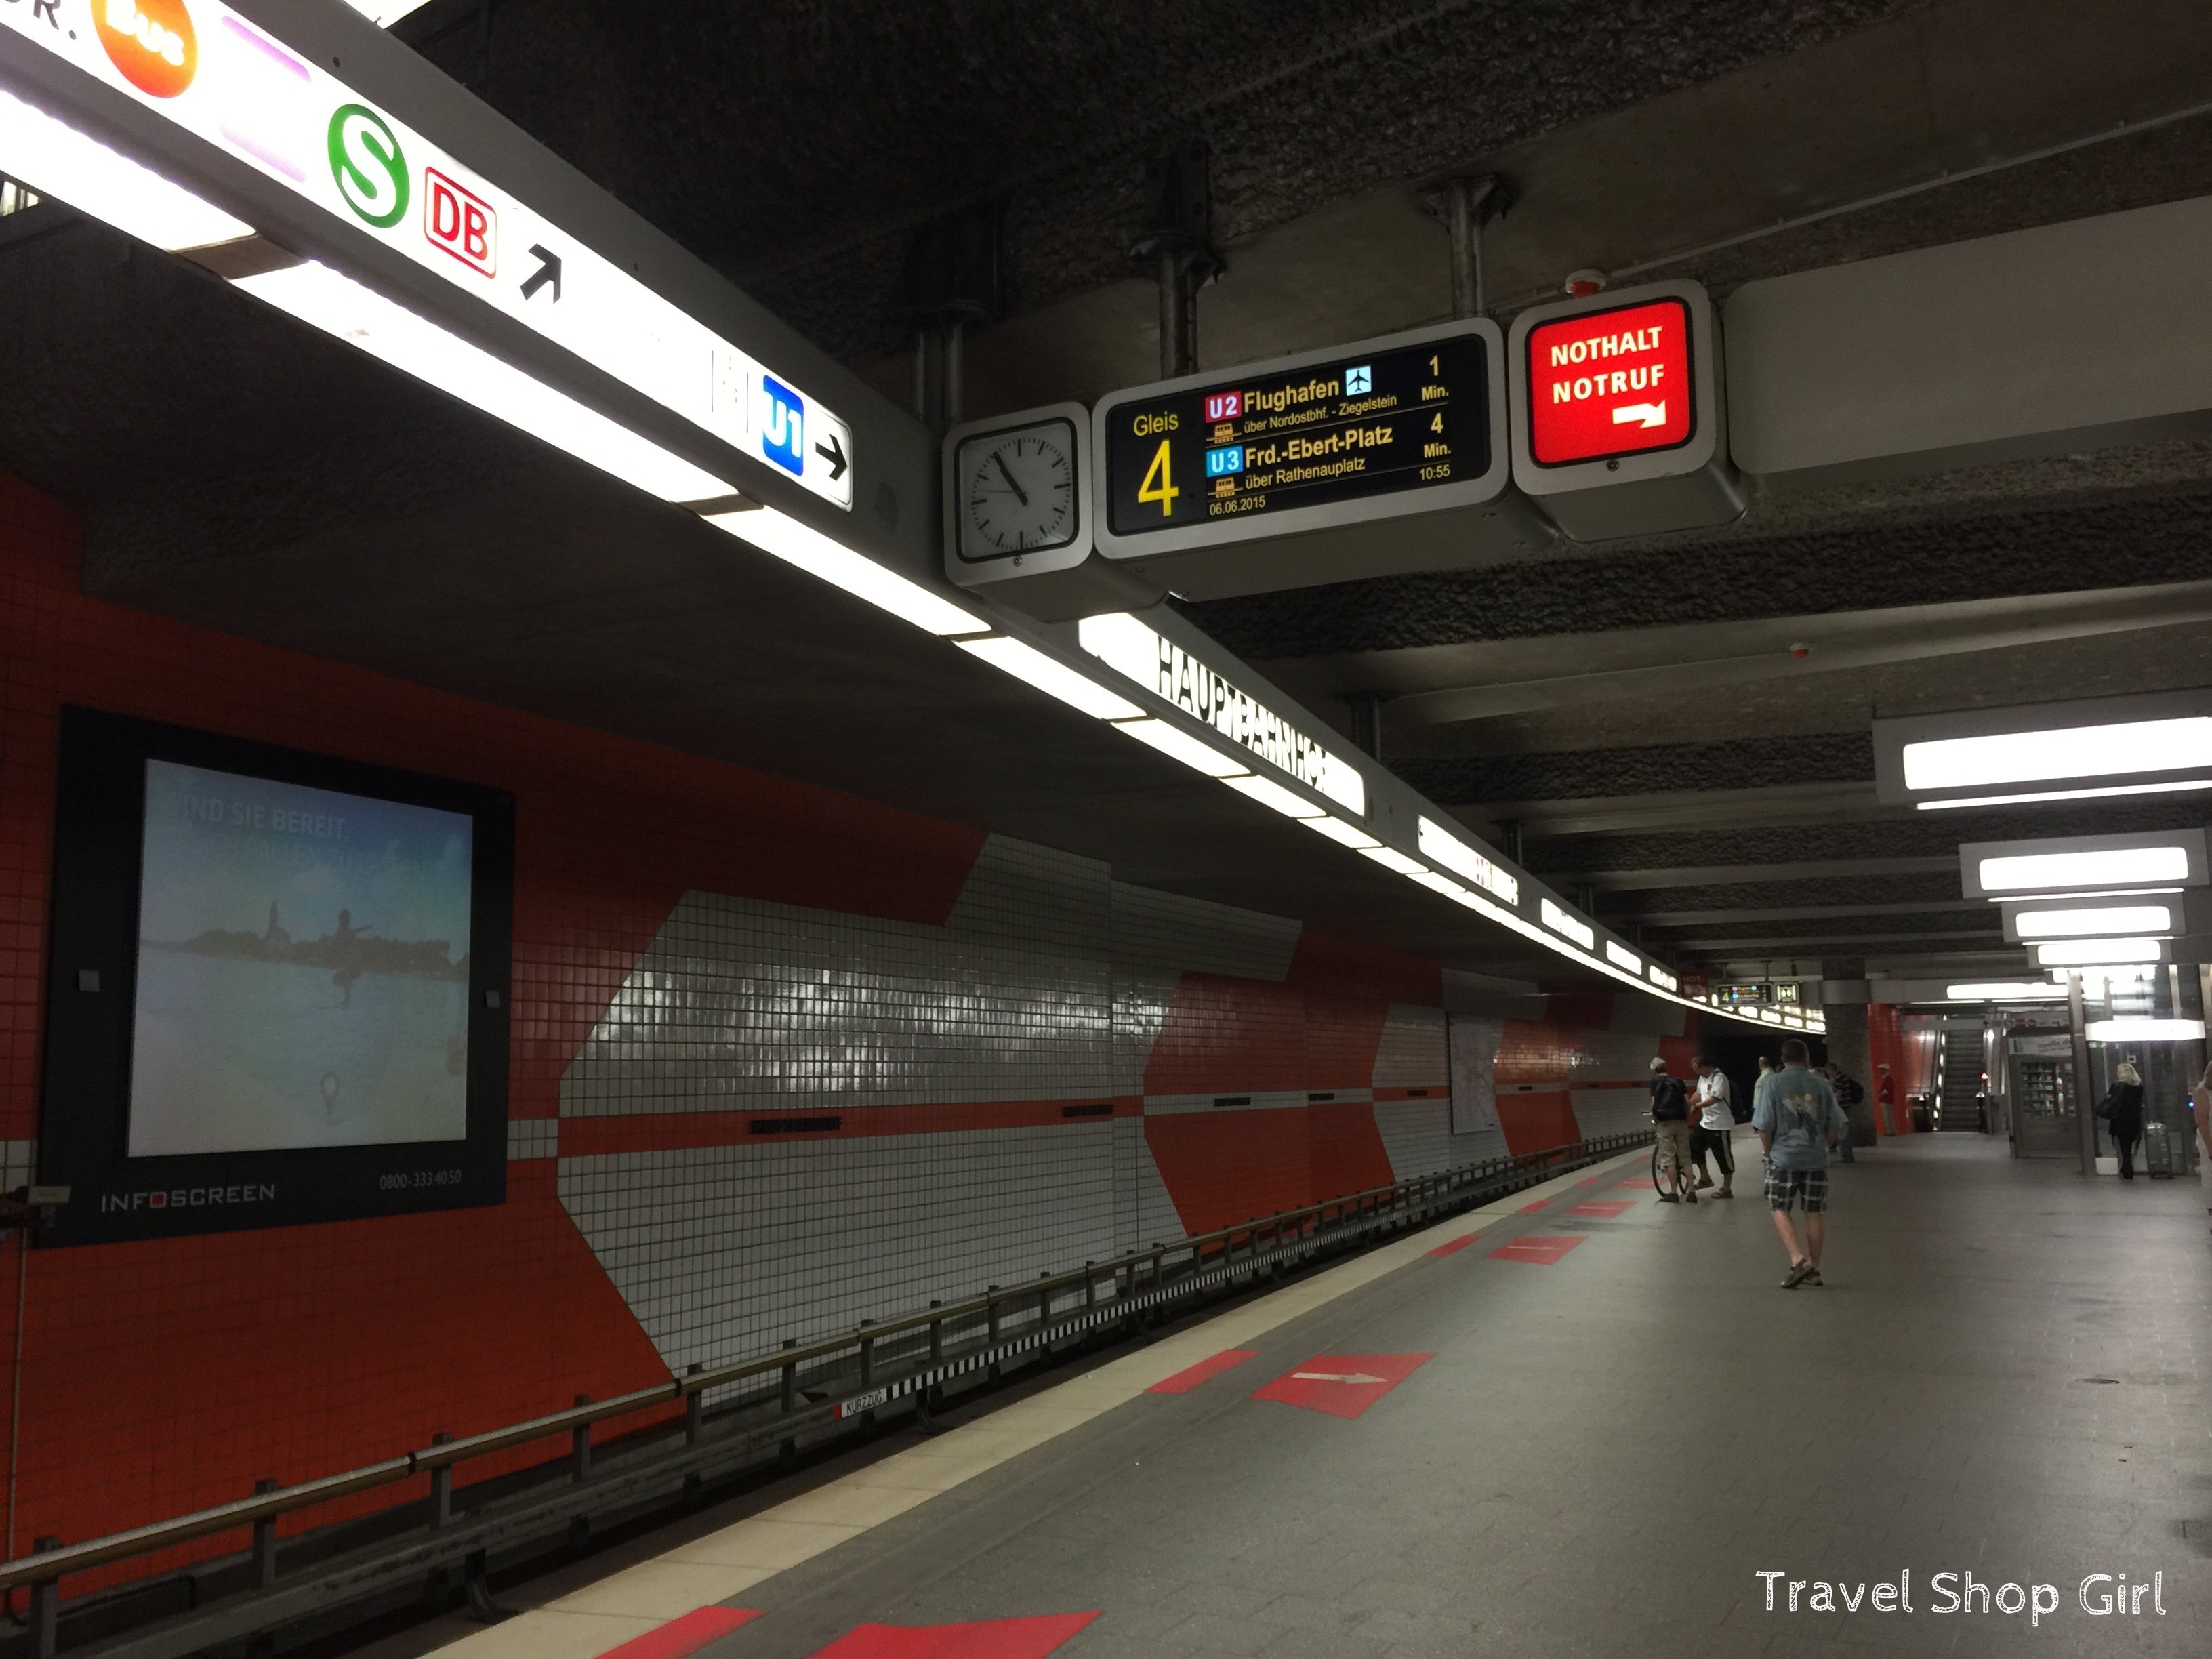 Taking the Train from the Airport into Nuremberg UBahn Travel